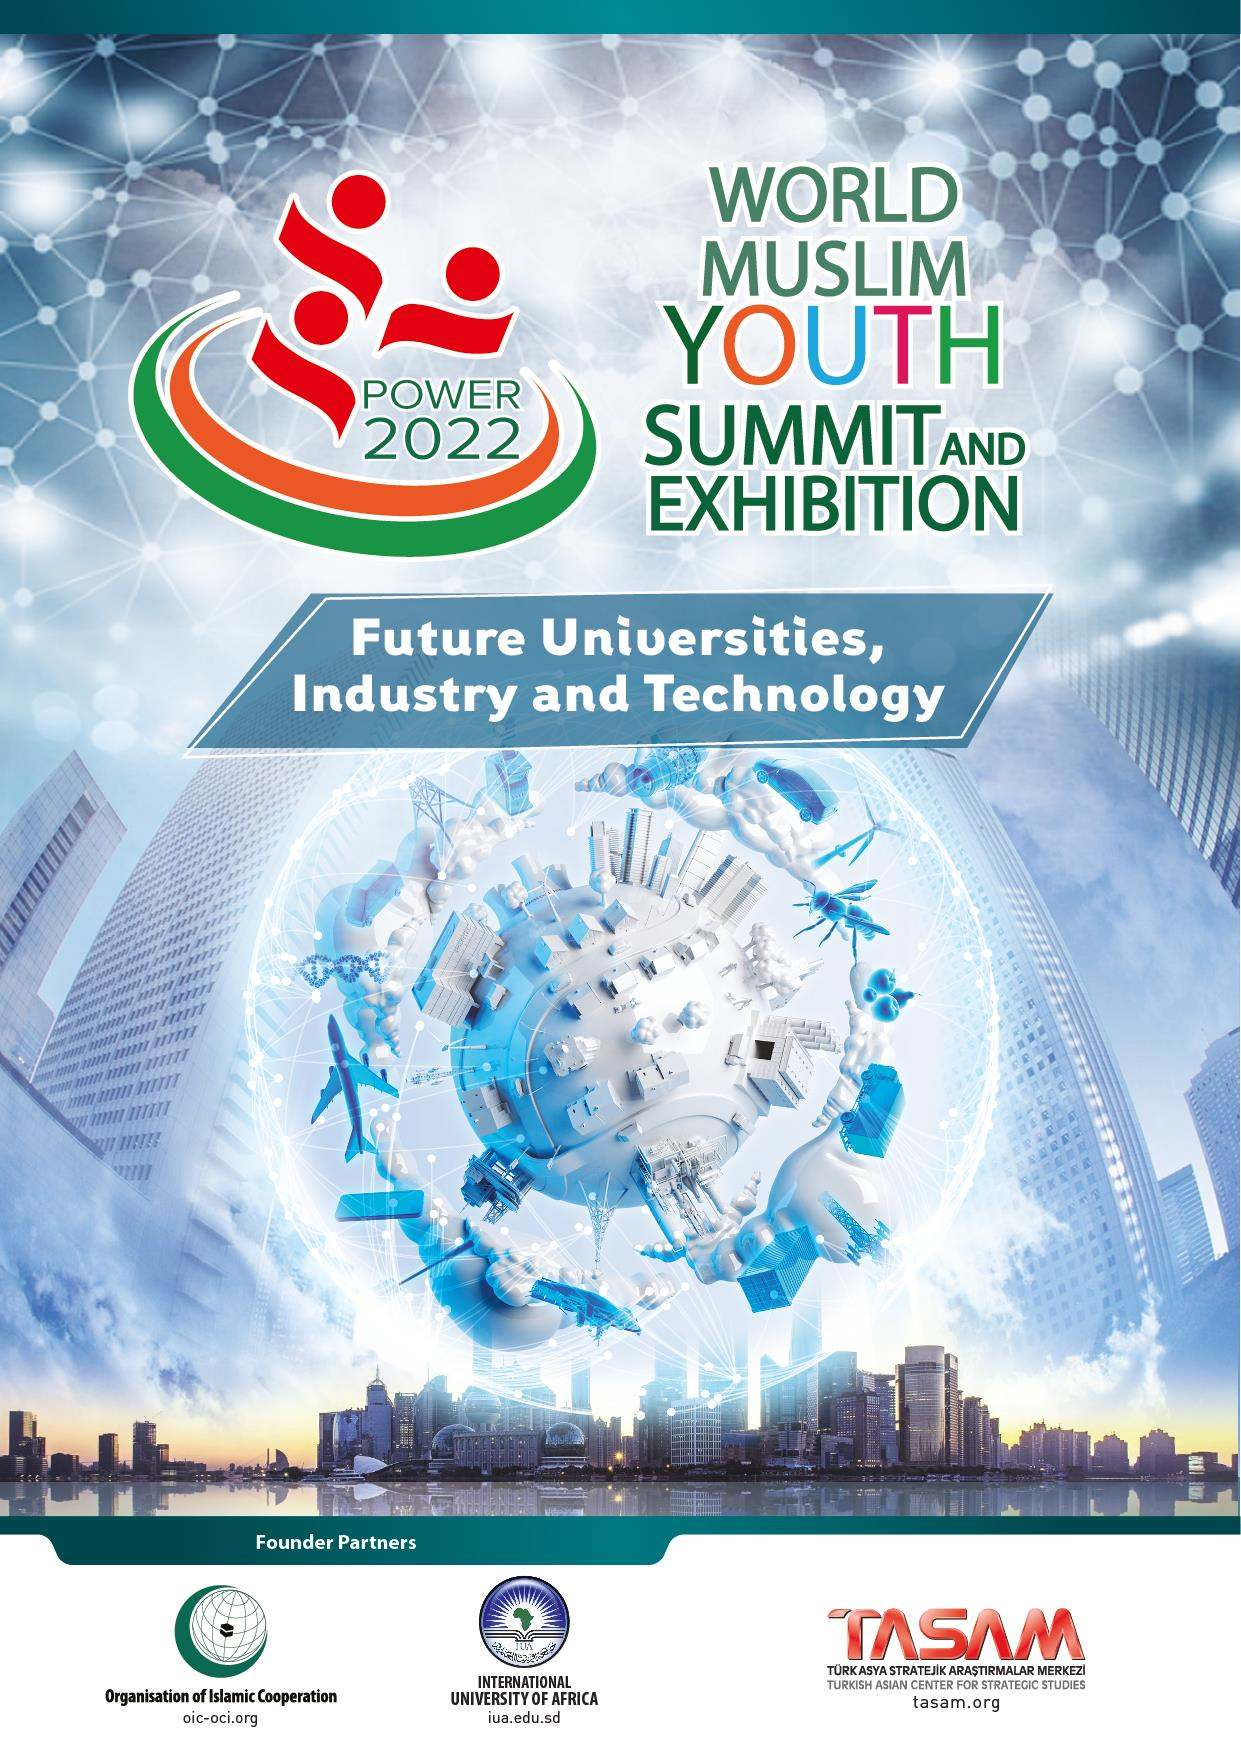 World Muslim Youth Summit and Exhibition | POWER 2022